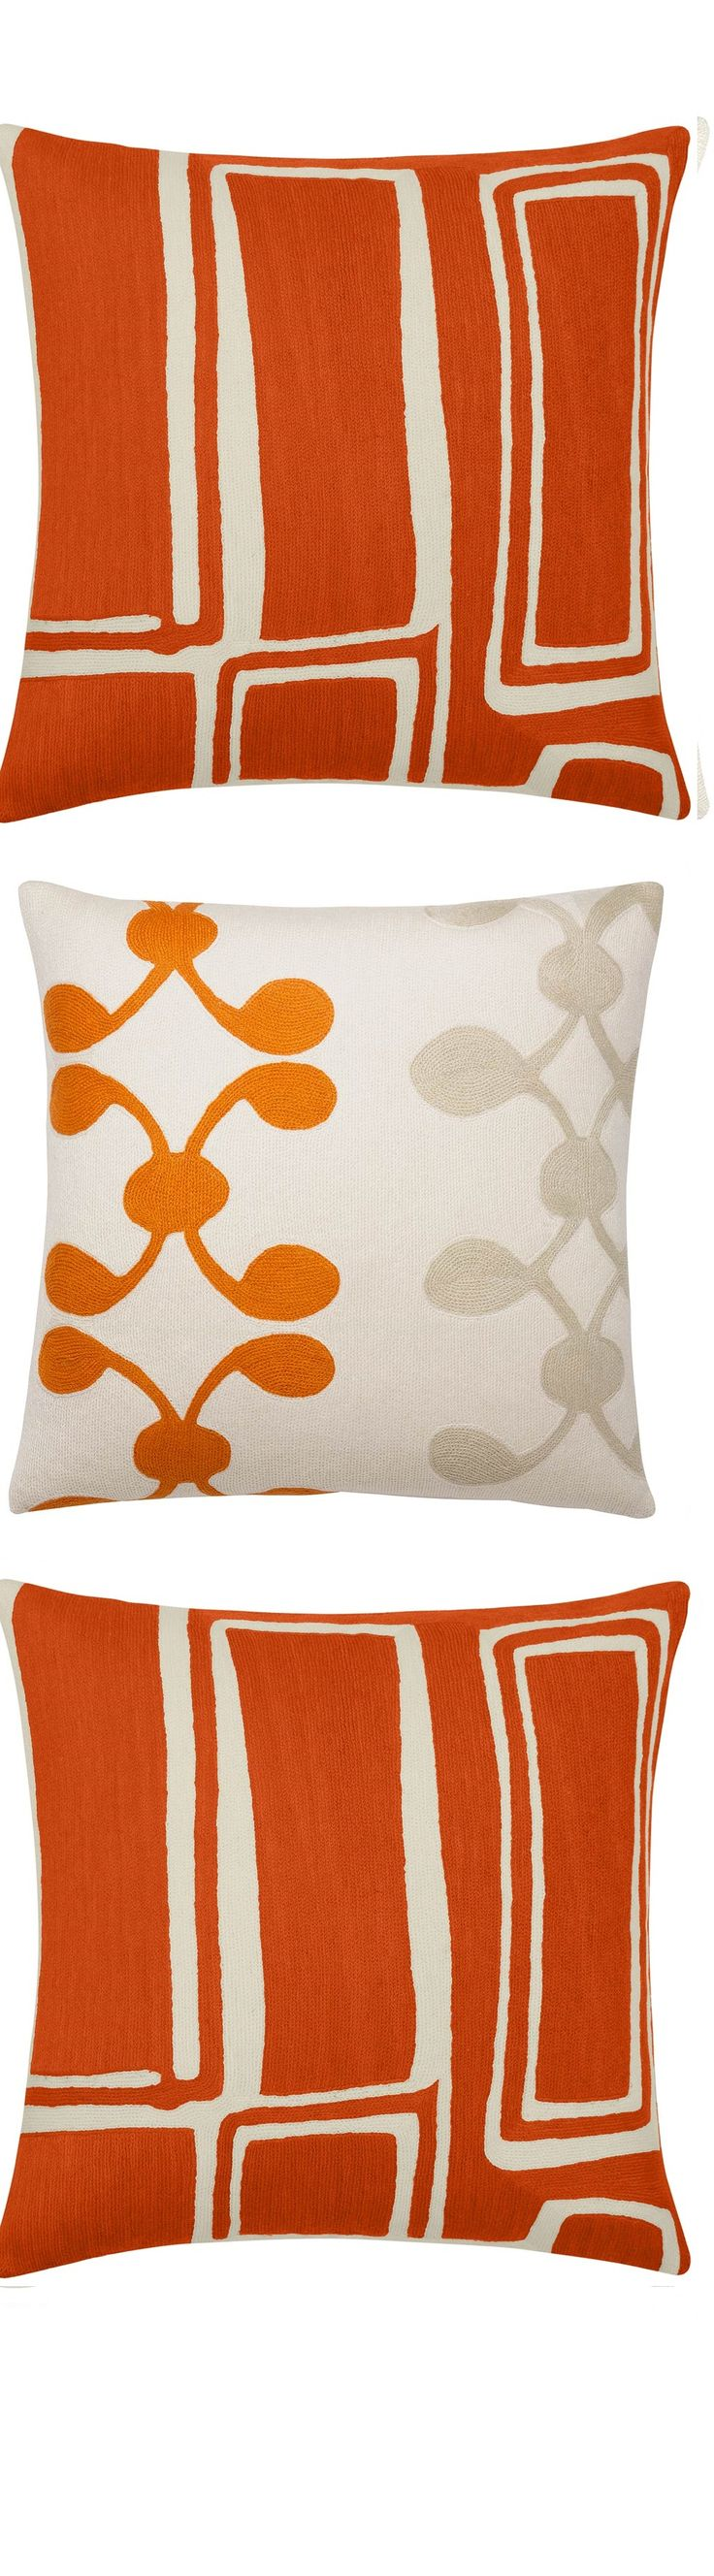 Best 25 Orange throw pillows ideas only on Pinterest